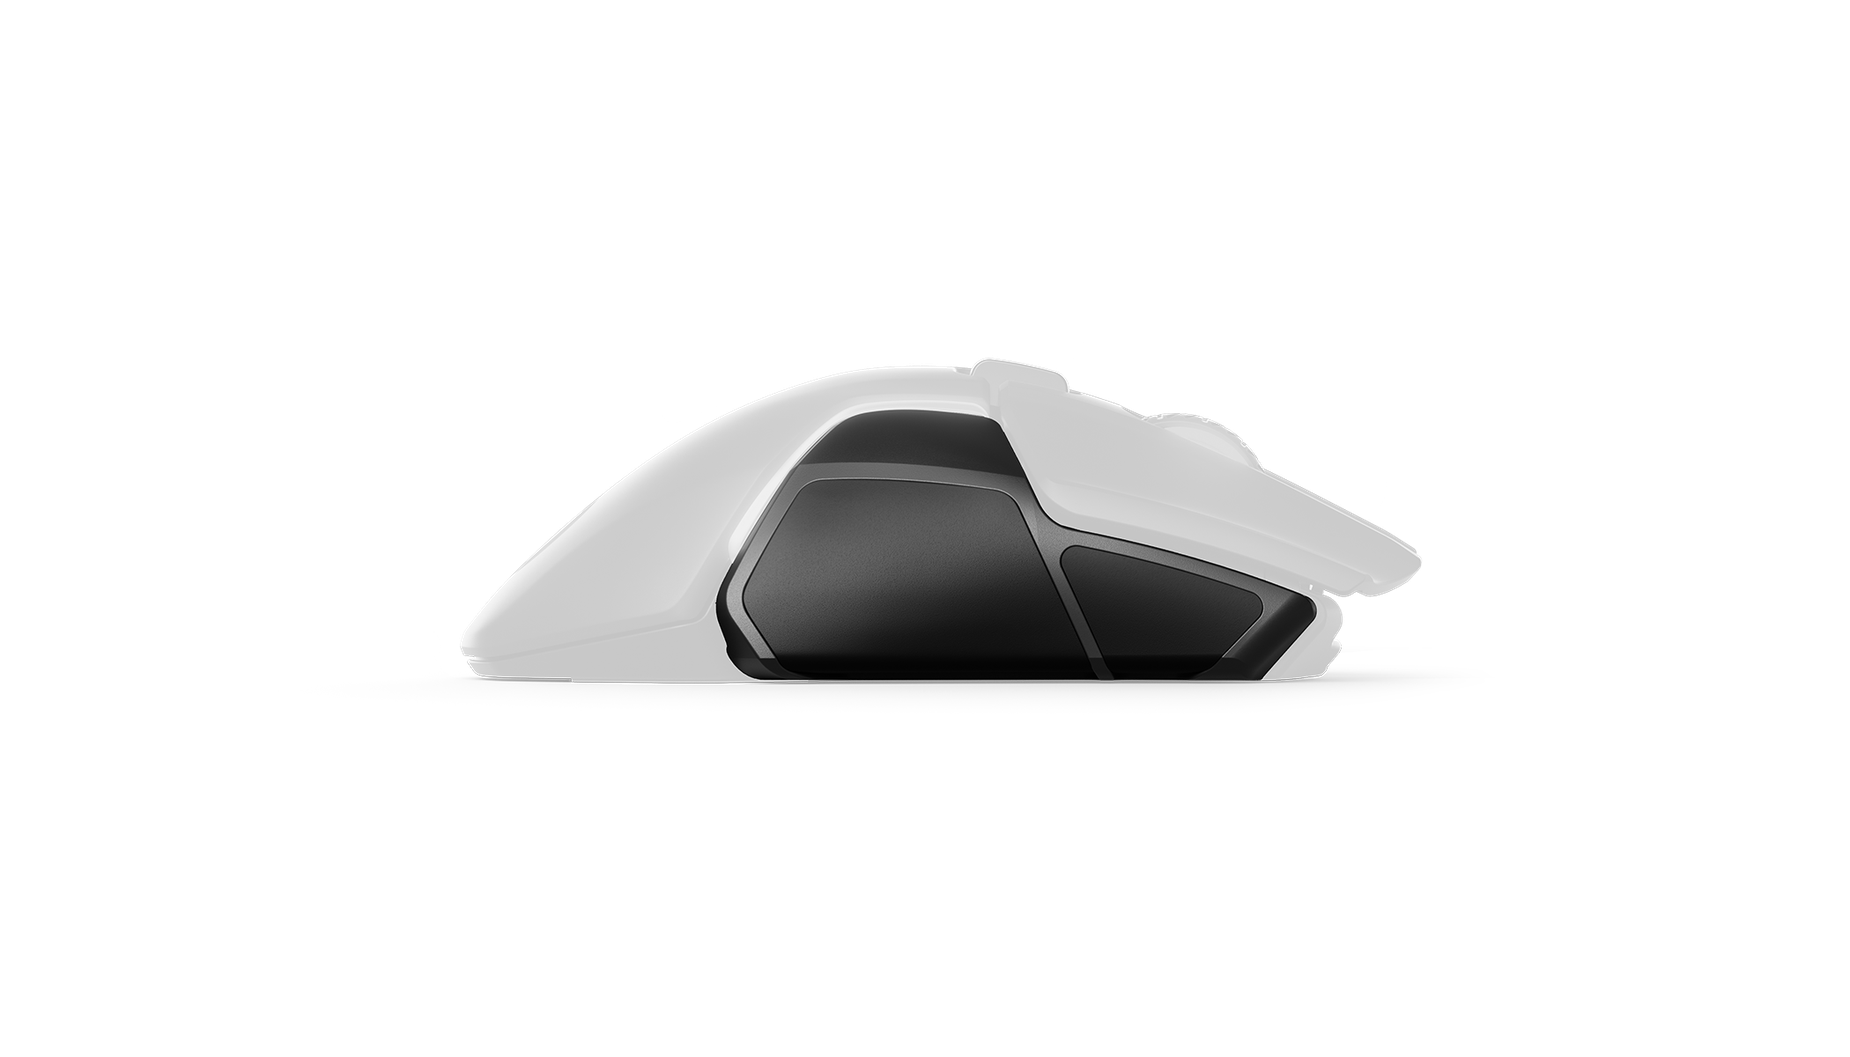 Rival 650 Side Panels, right